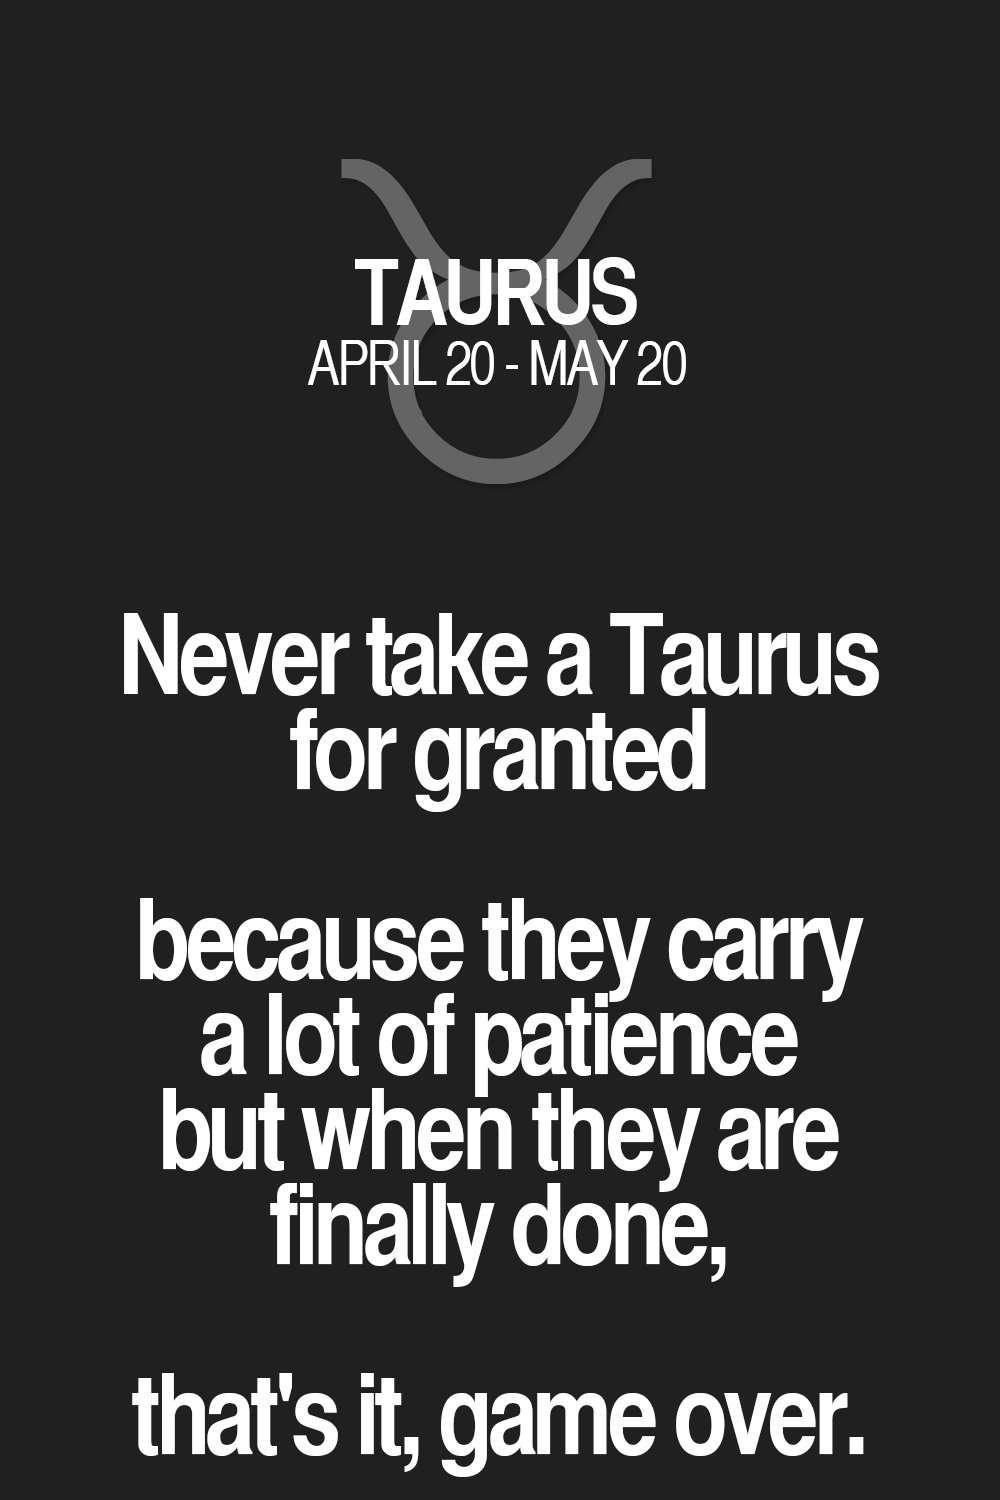 Never Take A Taurus For Granted Because They Carry Lot Of Patience But When Are Finally Done Thats It Game Over